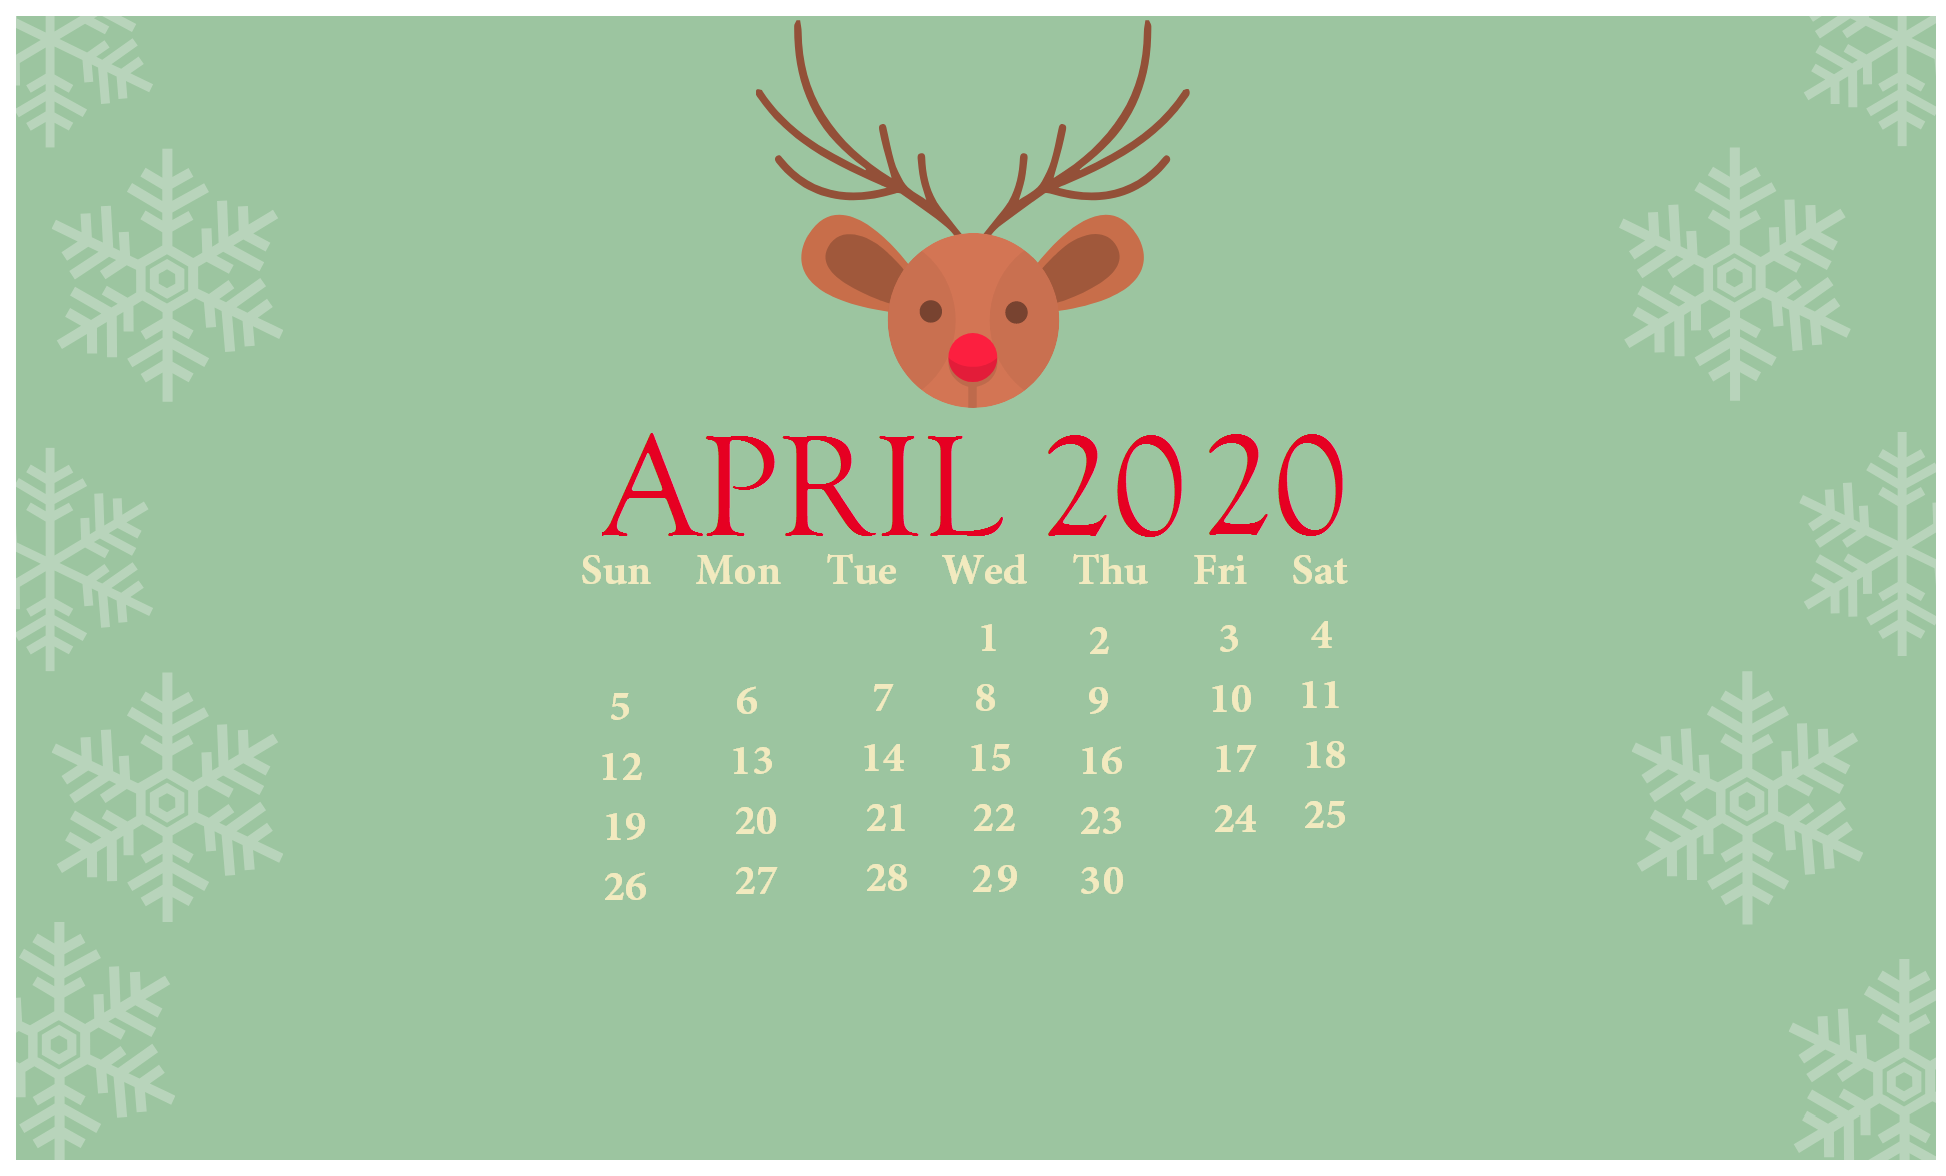 download Cute 2020 Desktop Calendar Wallpaper Latest Calendar 1946x1176